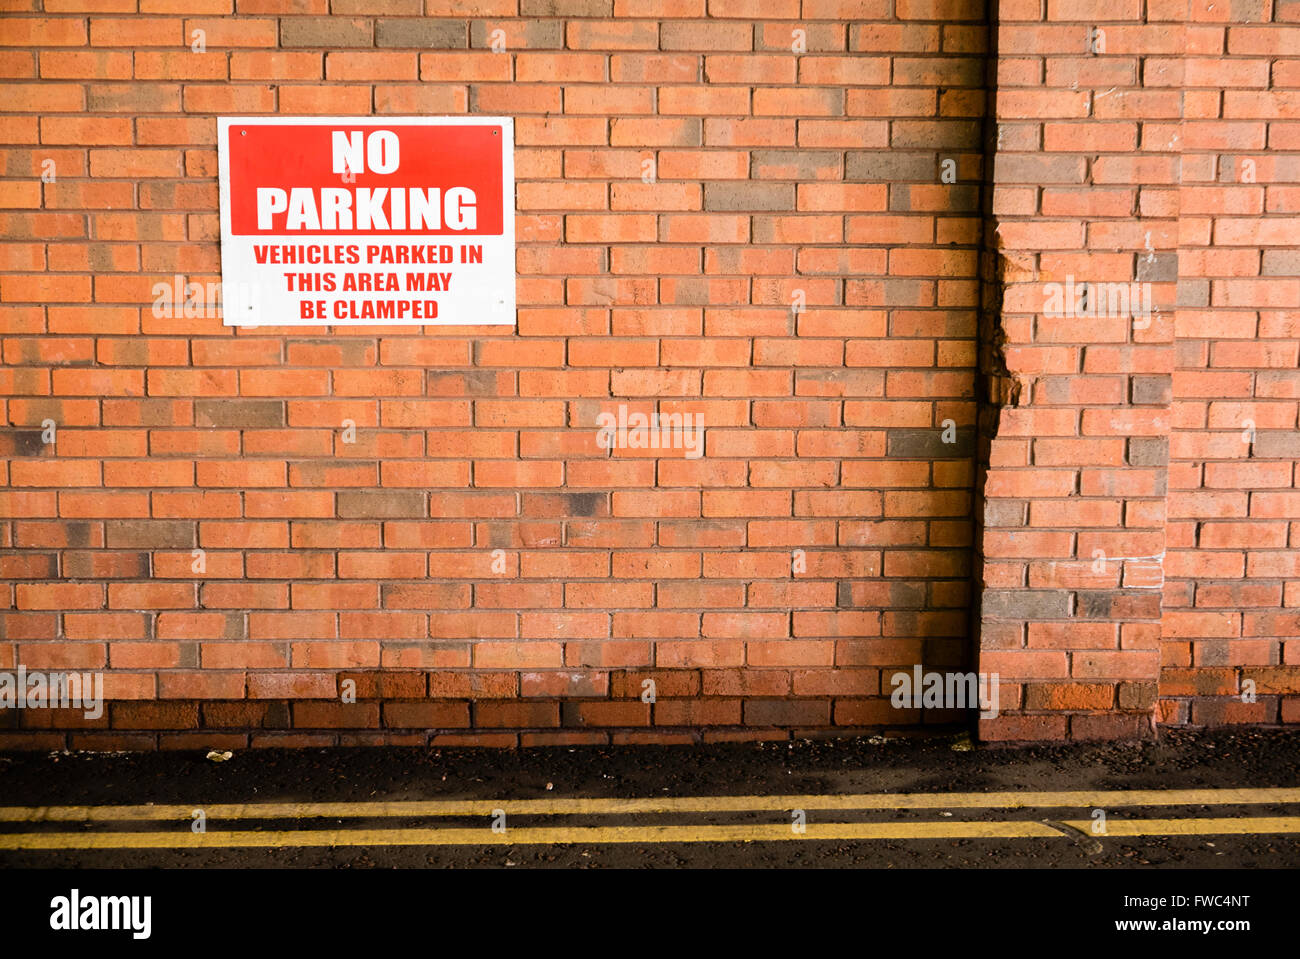 Sign on a brick wall warning that parking is prohibited, and that vehicles parked there may be clamped. - Stock Image